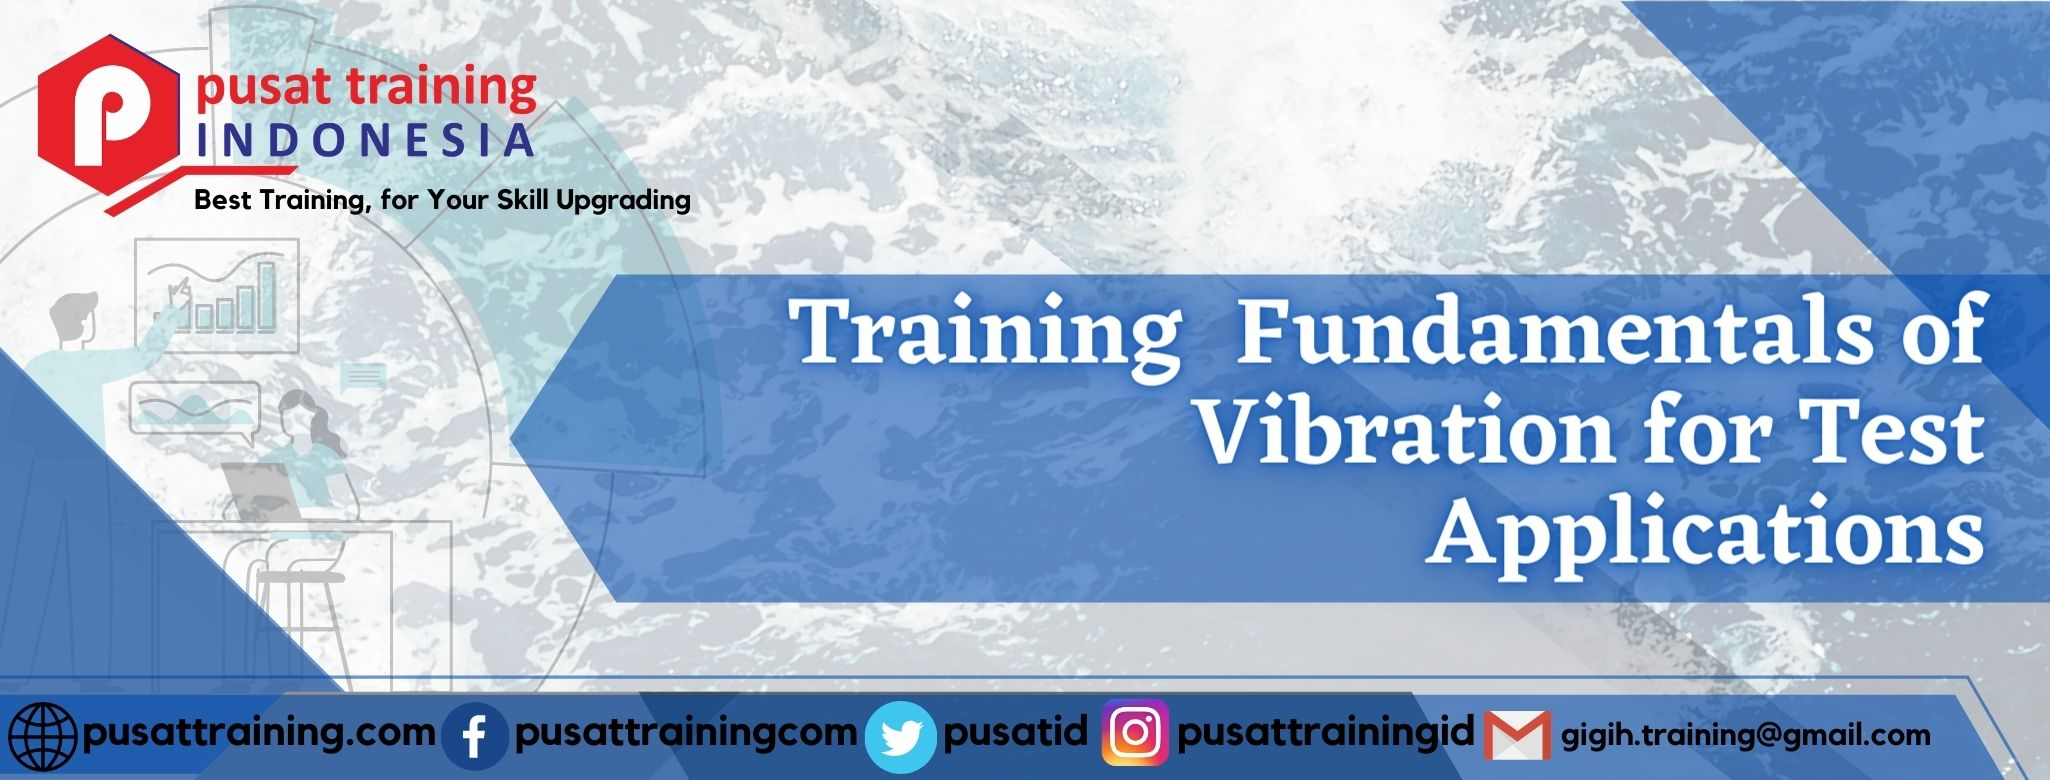 training-fundamentals-of-vibration-for-test-applications